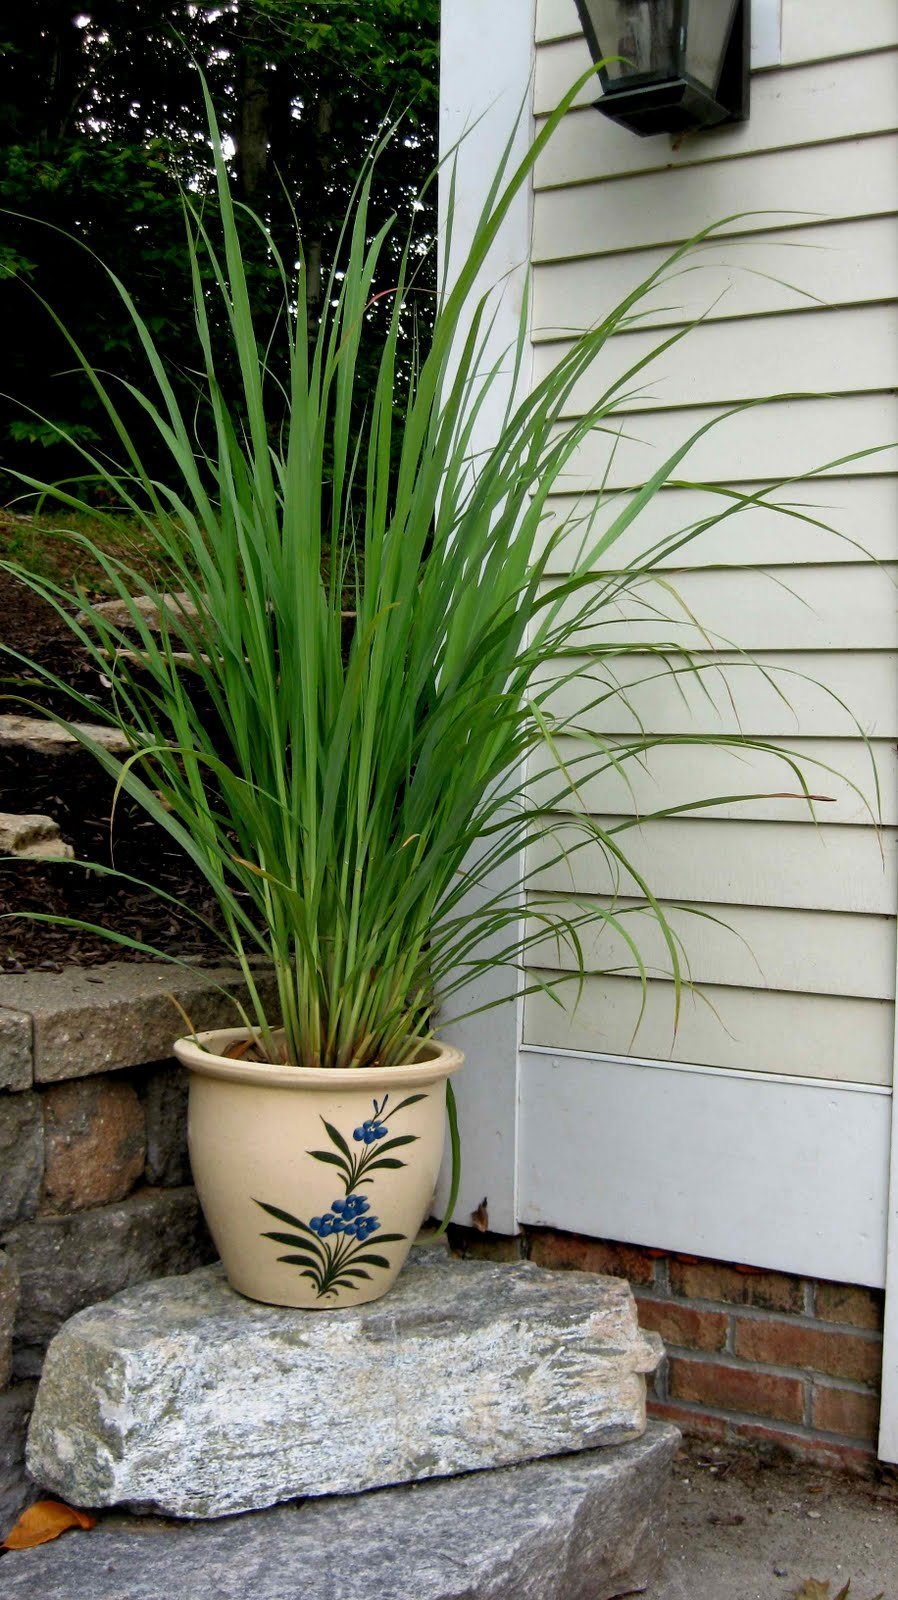 Clovers Garden 2 Nicely Sized Lemongrass Plants Live - Mosquito Repellent Plants 4''- 7'' Tall in 3.5'' Pots - Non-GMO Edible Medicinal Herb Cymbopogon